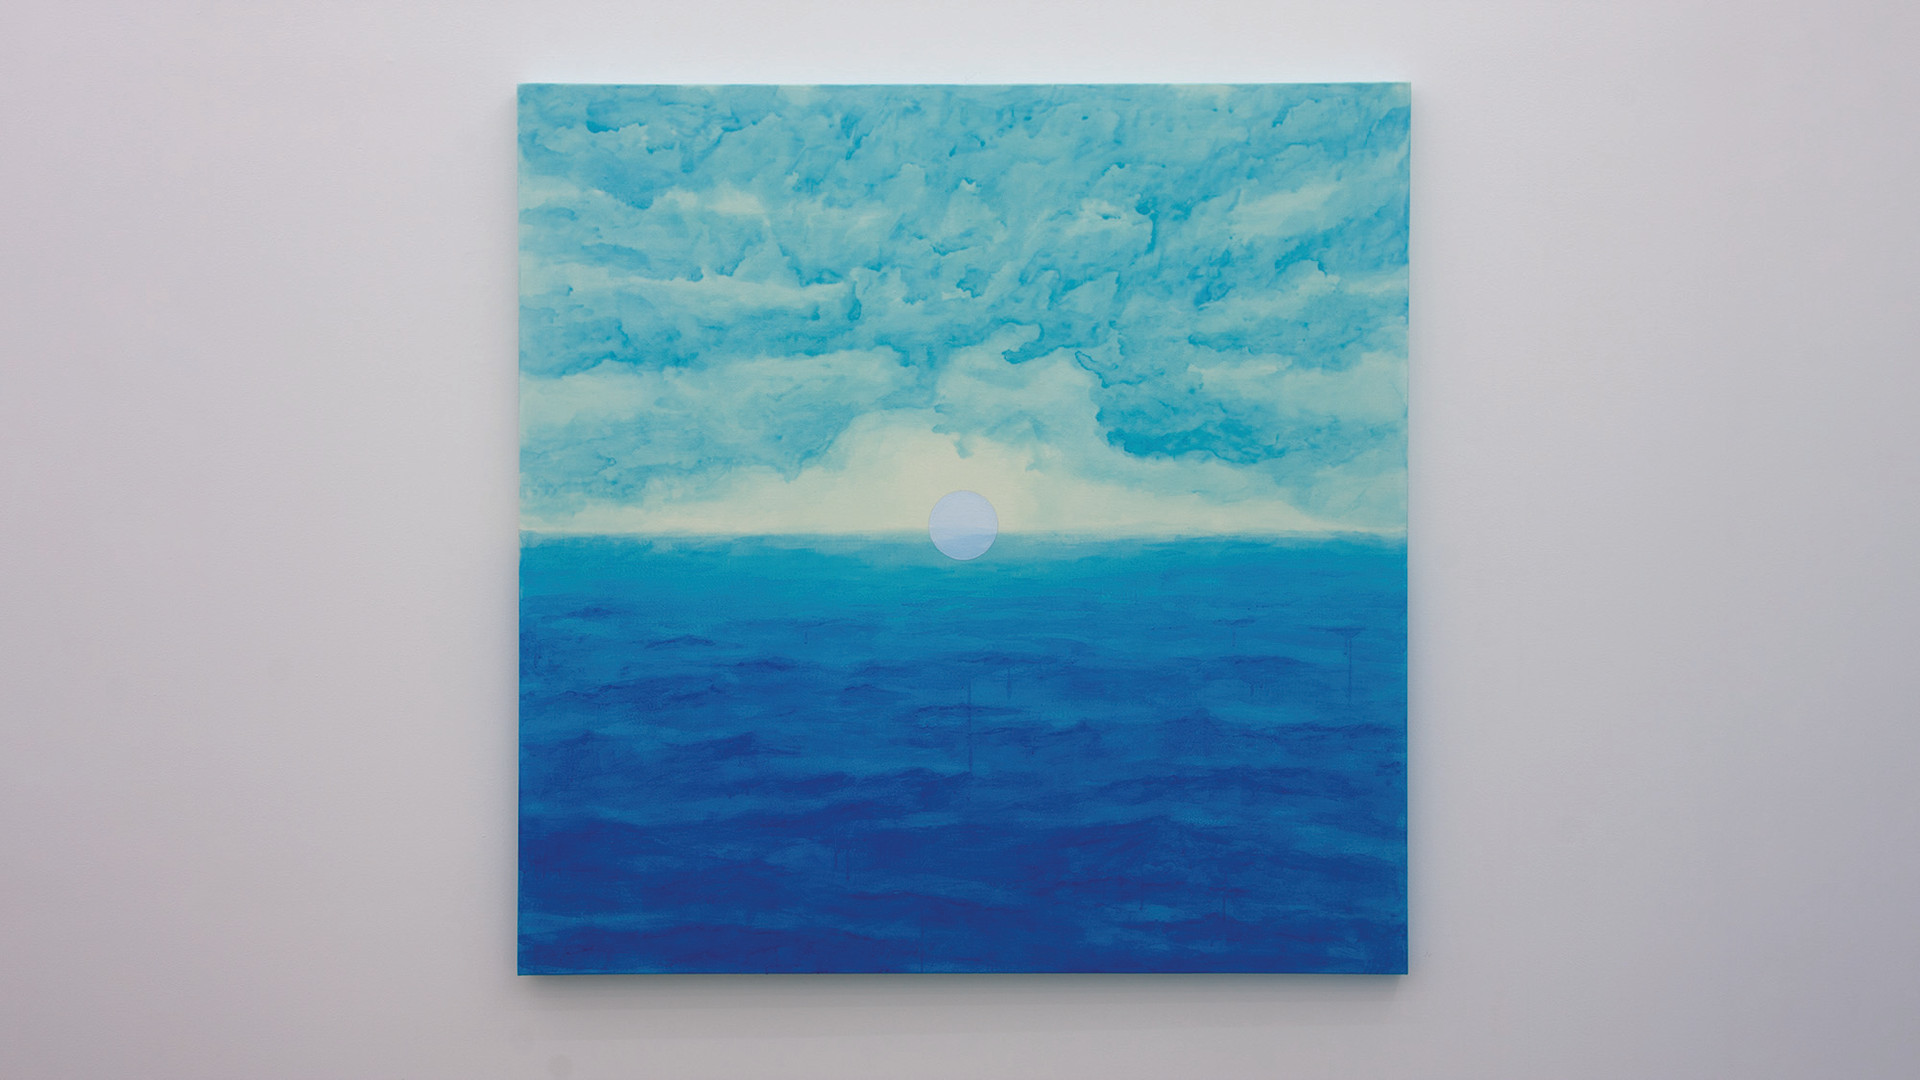 A Particle over the Horizon, 2020, acrylic & phosphorescent pigment on canvas, 145 x 145 cm